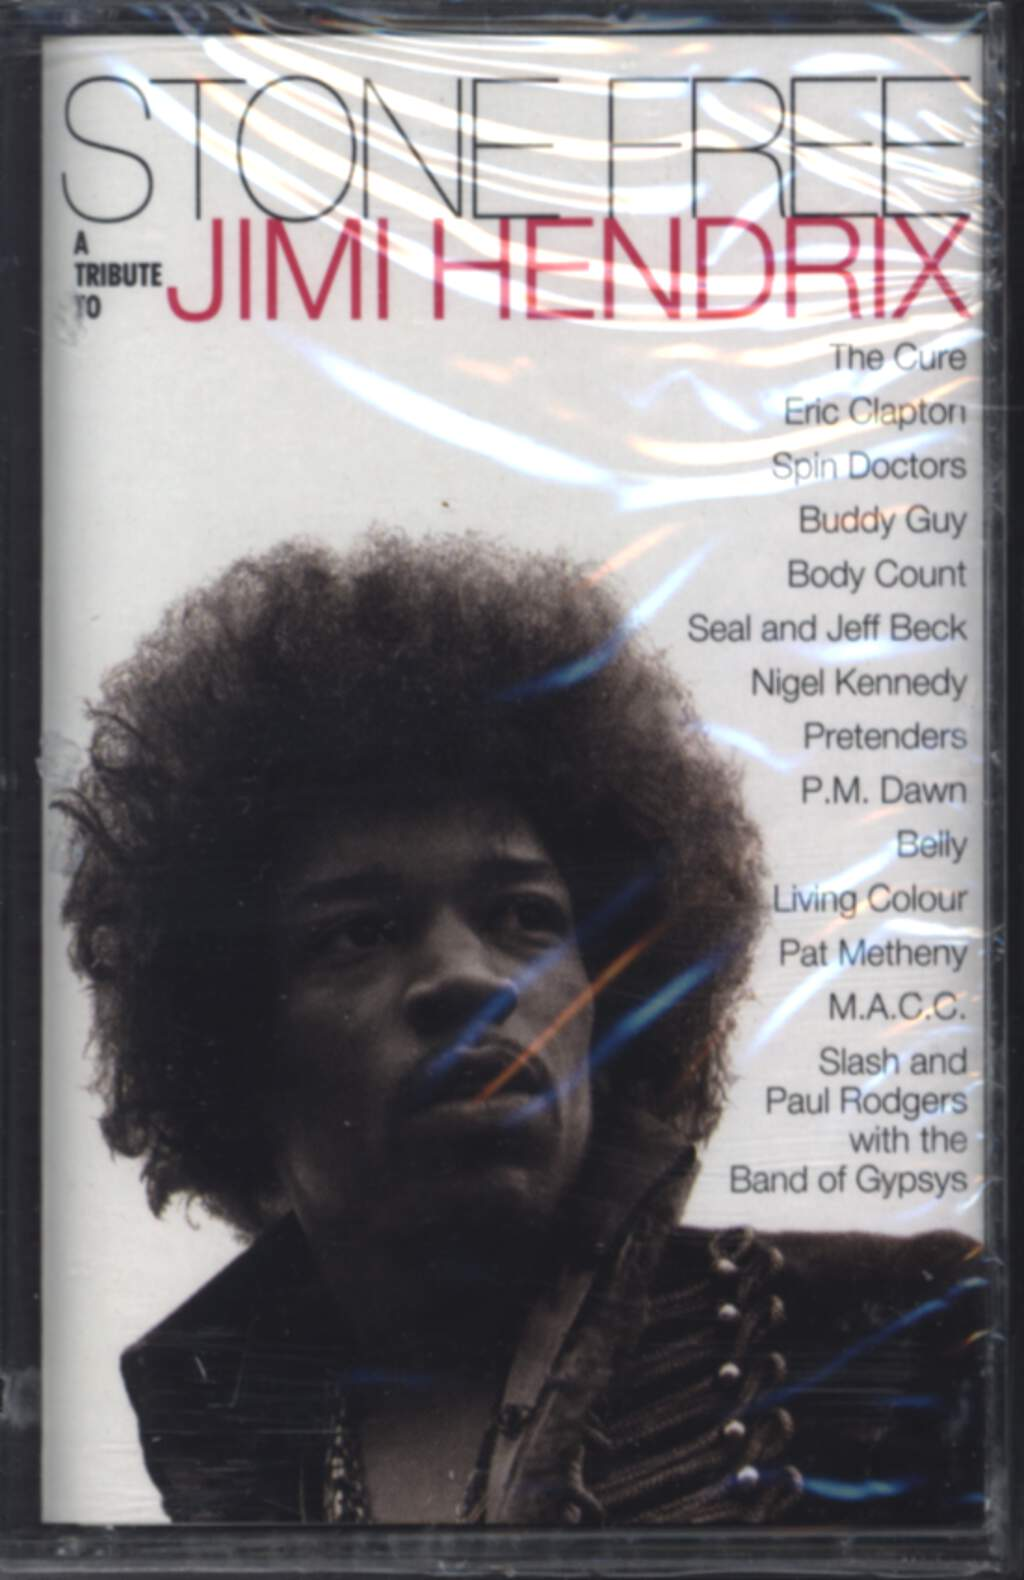 Various: Stone Free (A Tribute To Jimi Hendrix), Compact Cassette